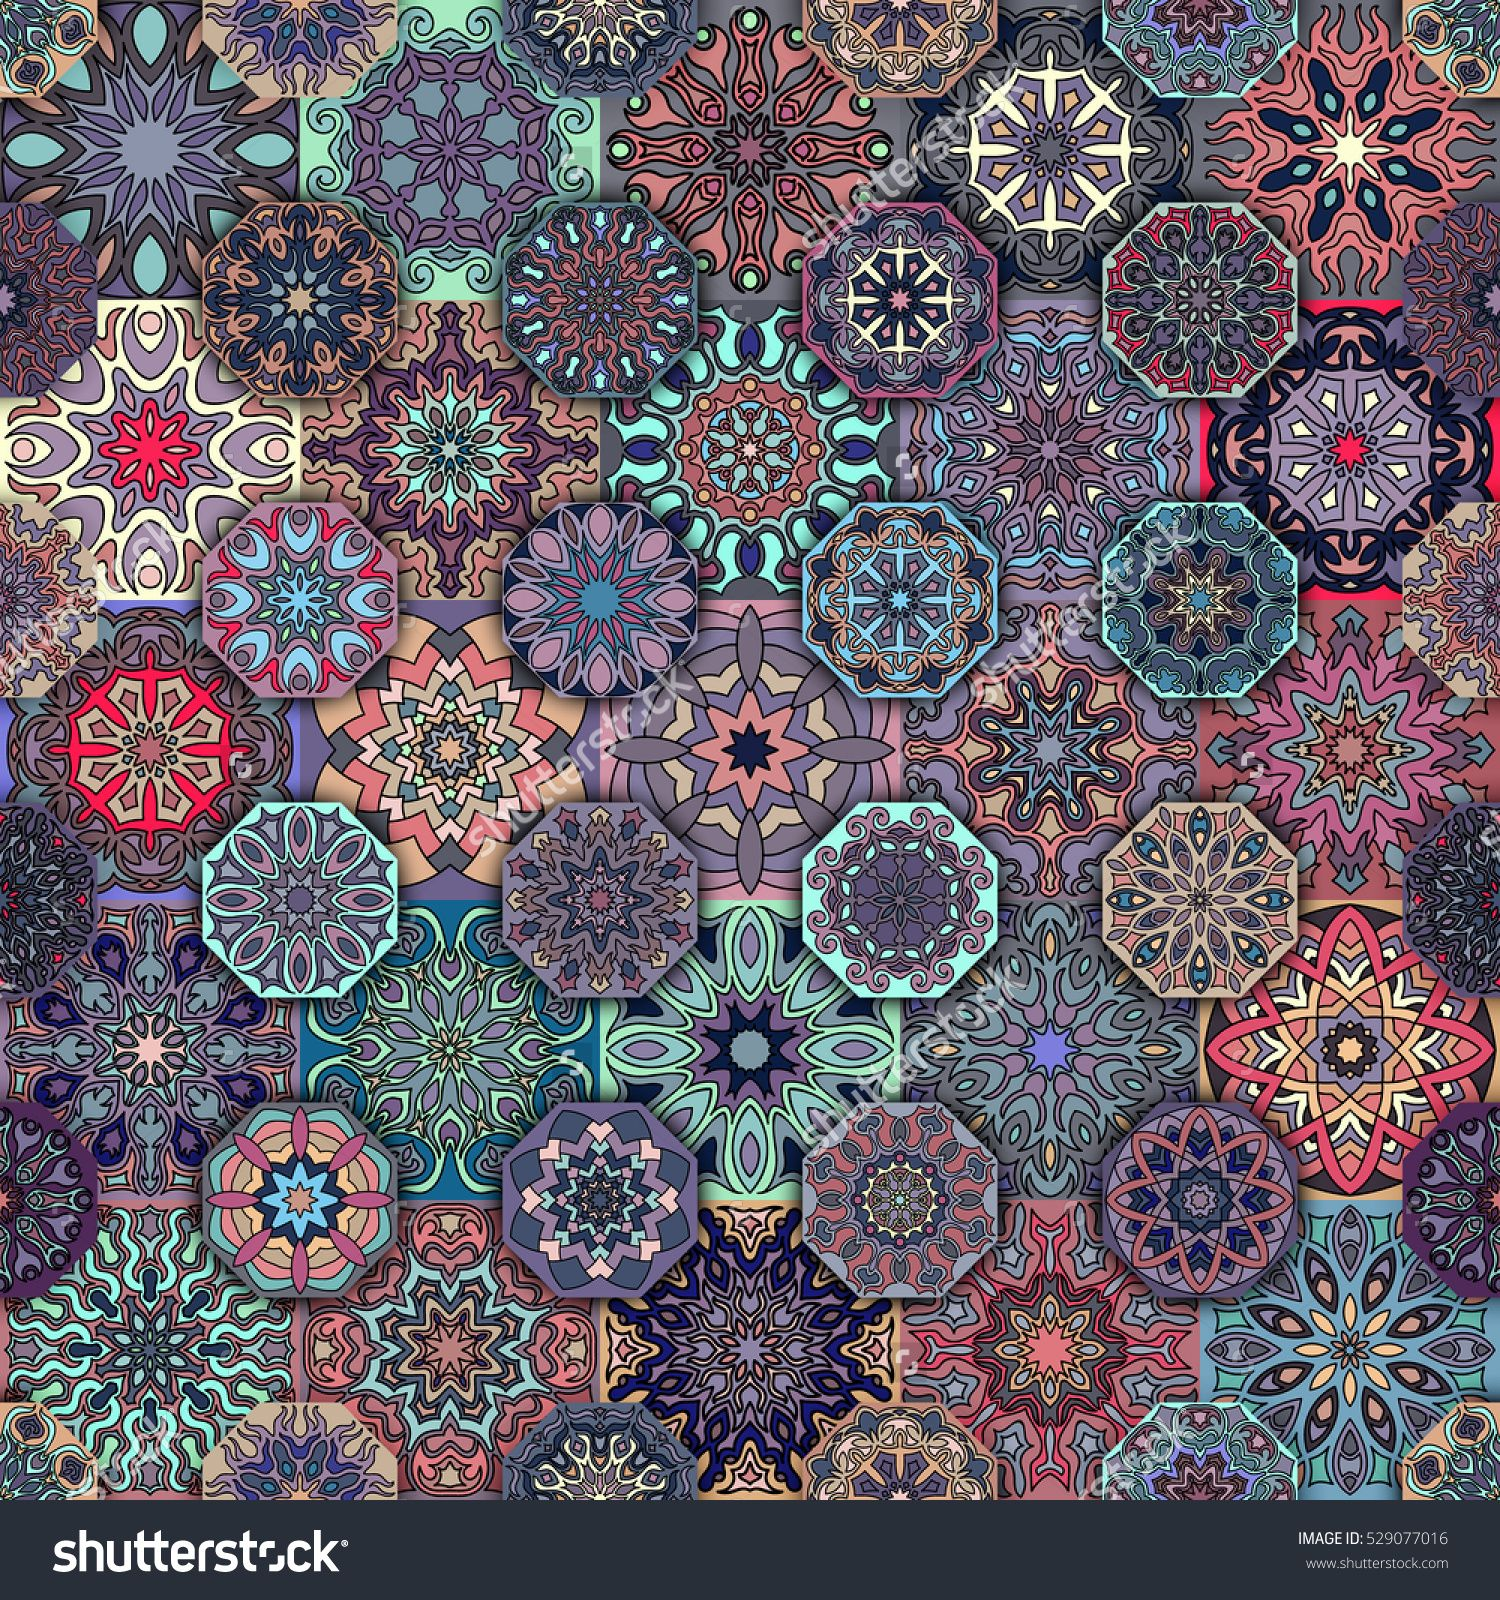 Colorful Vintage Seamless Pattern With Floral And Mandala